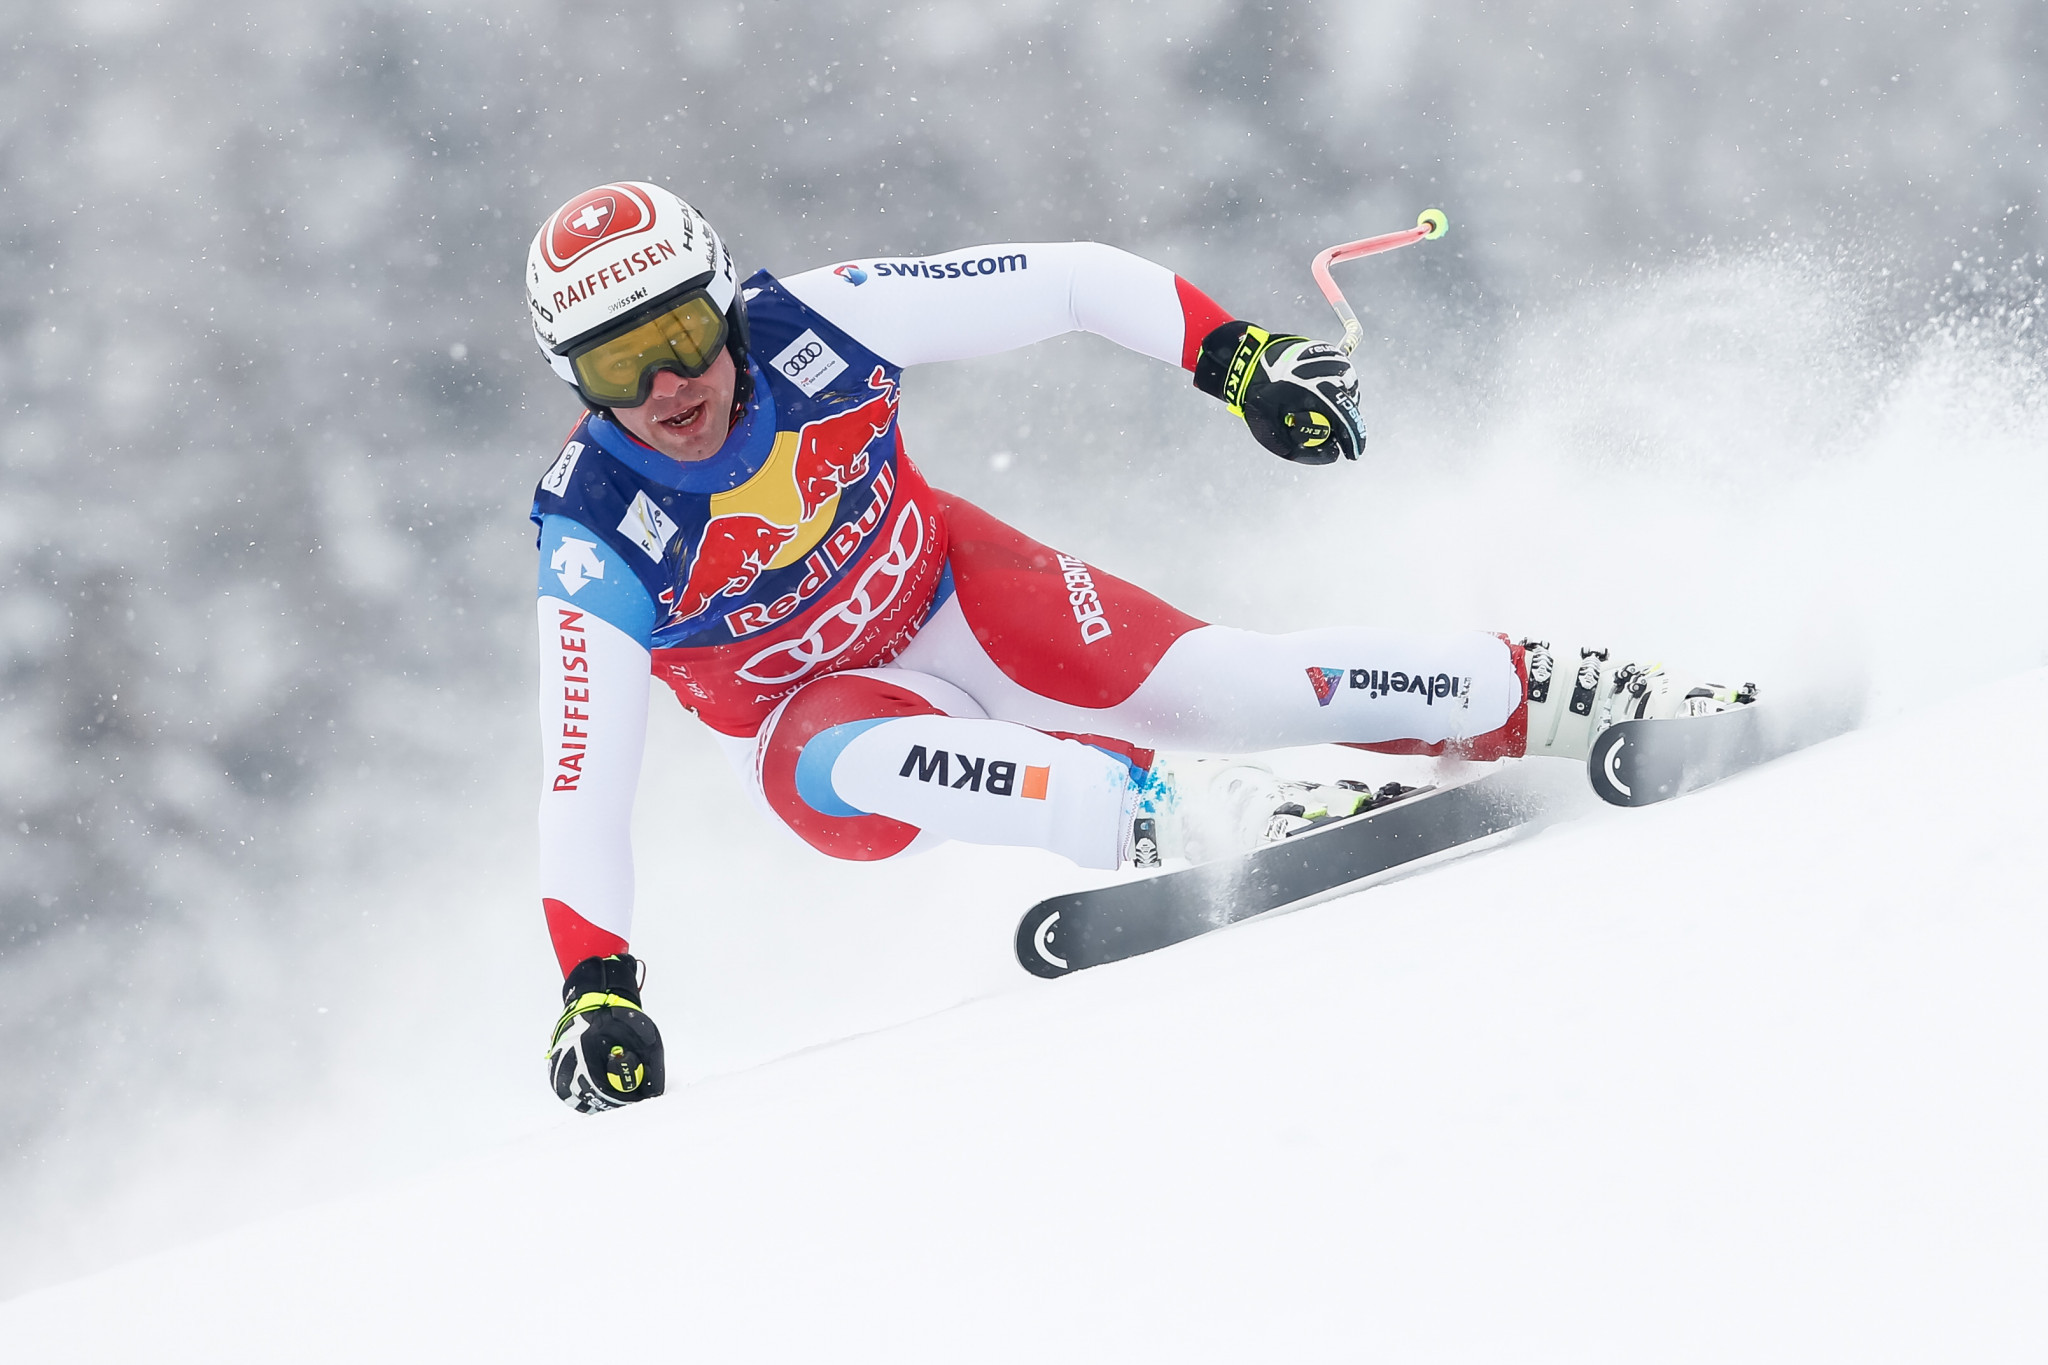 Switzerland's Beat Feuz, leader of the FIS Alpine Skiing World Cup standings in downhill, finished second today ©Getty Images